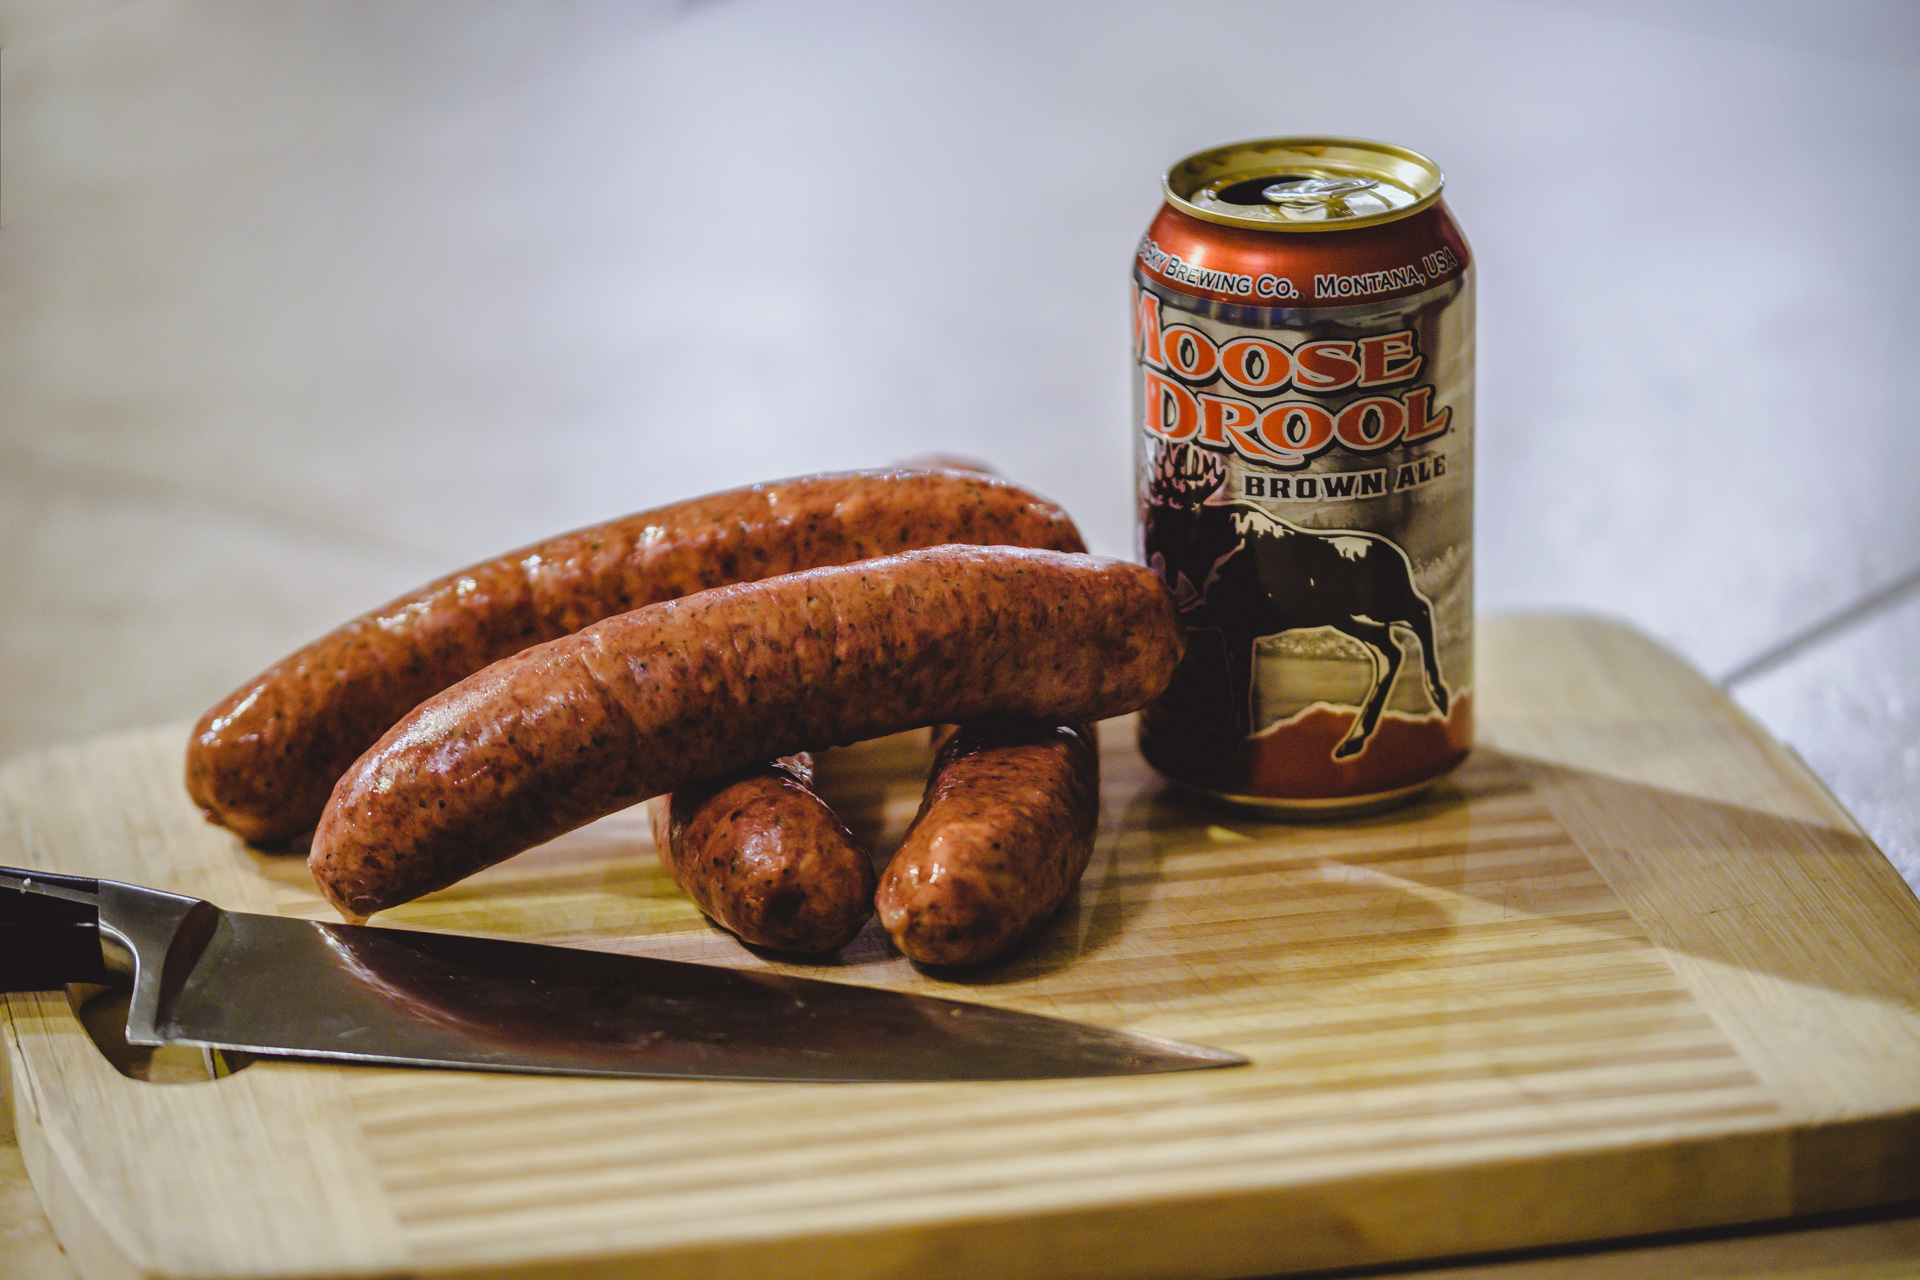 Starting with great kielbasa and Moose Drool from Big Sky Brewing